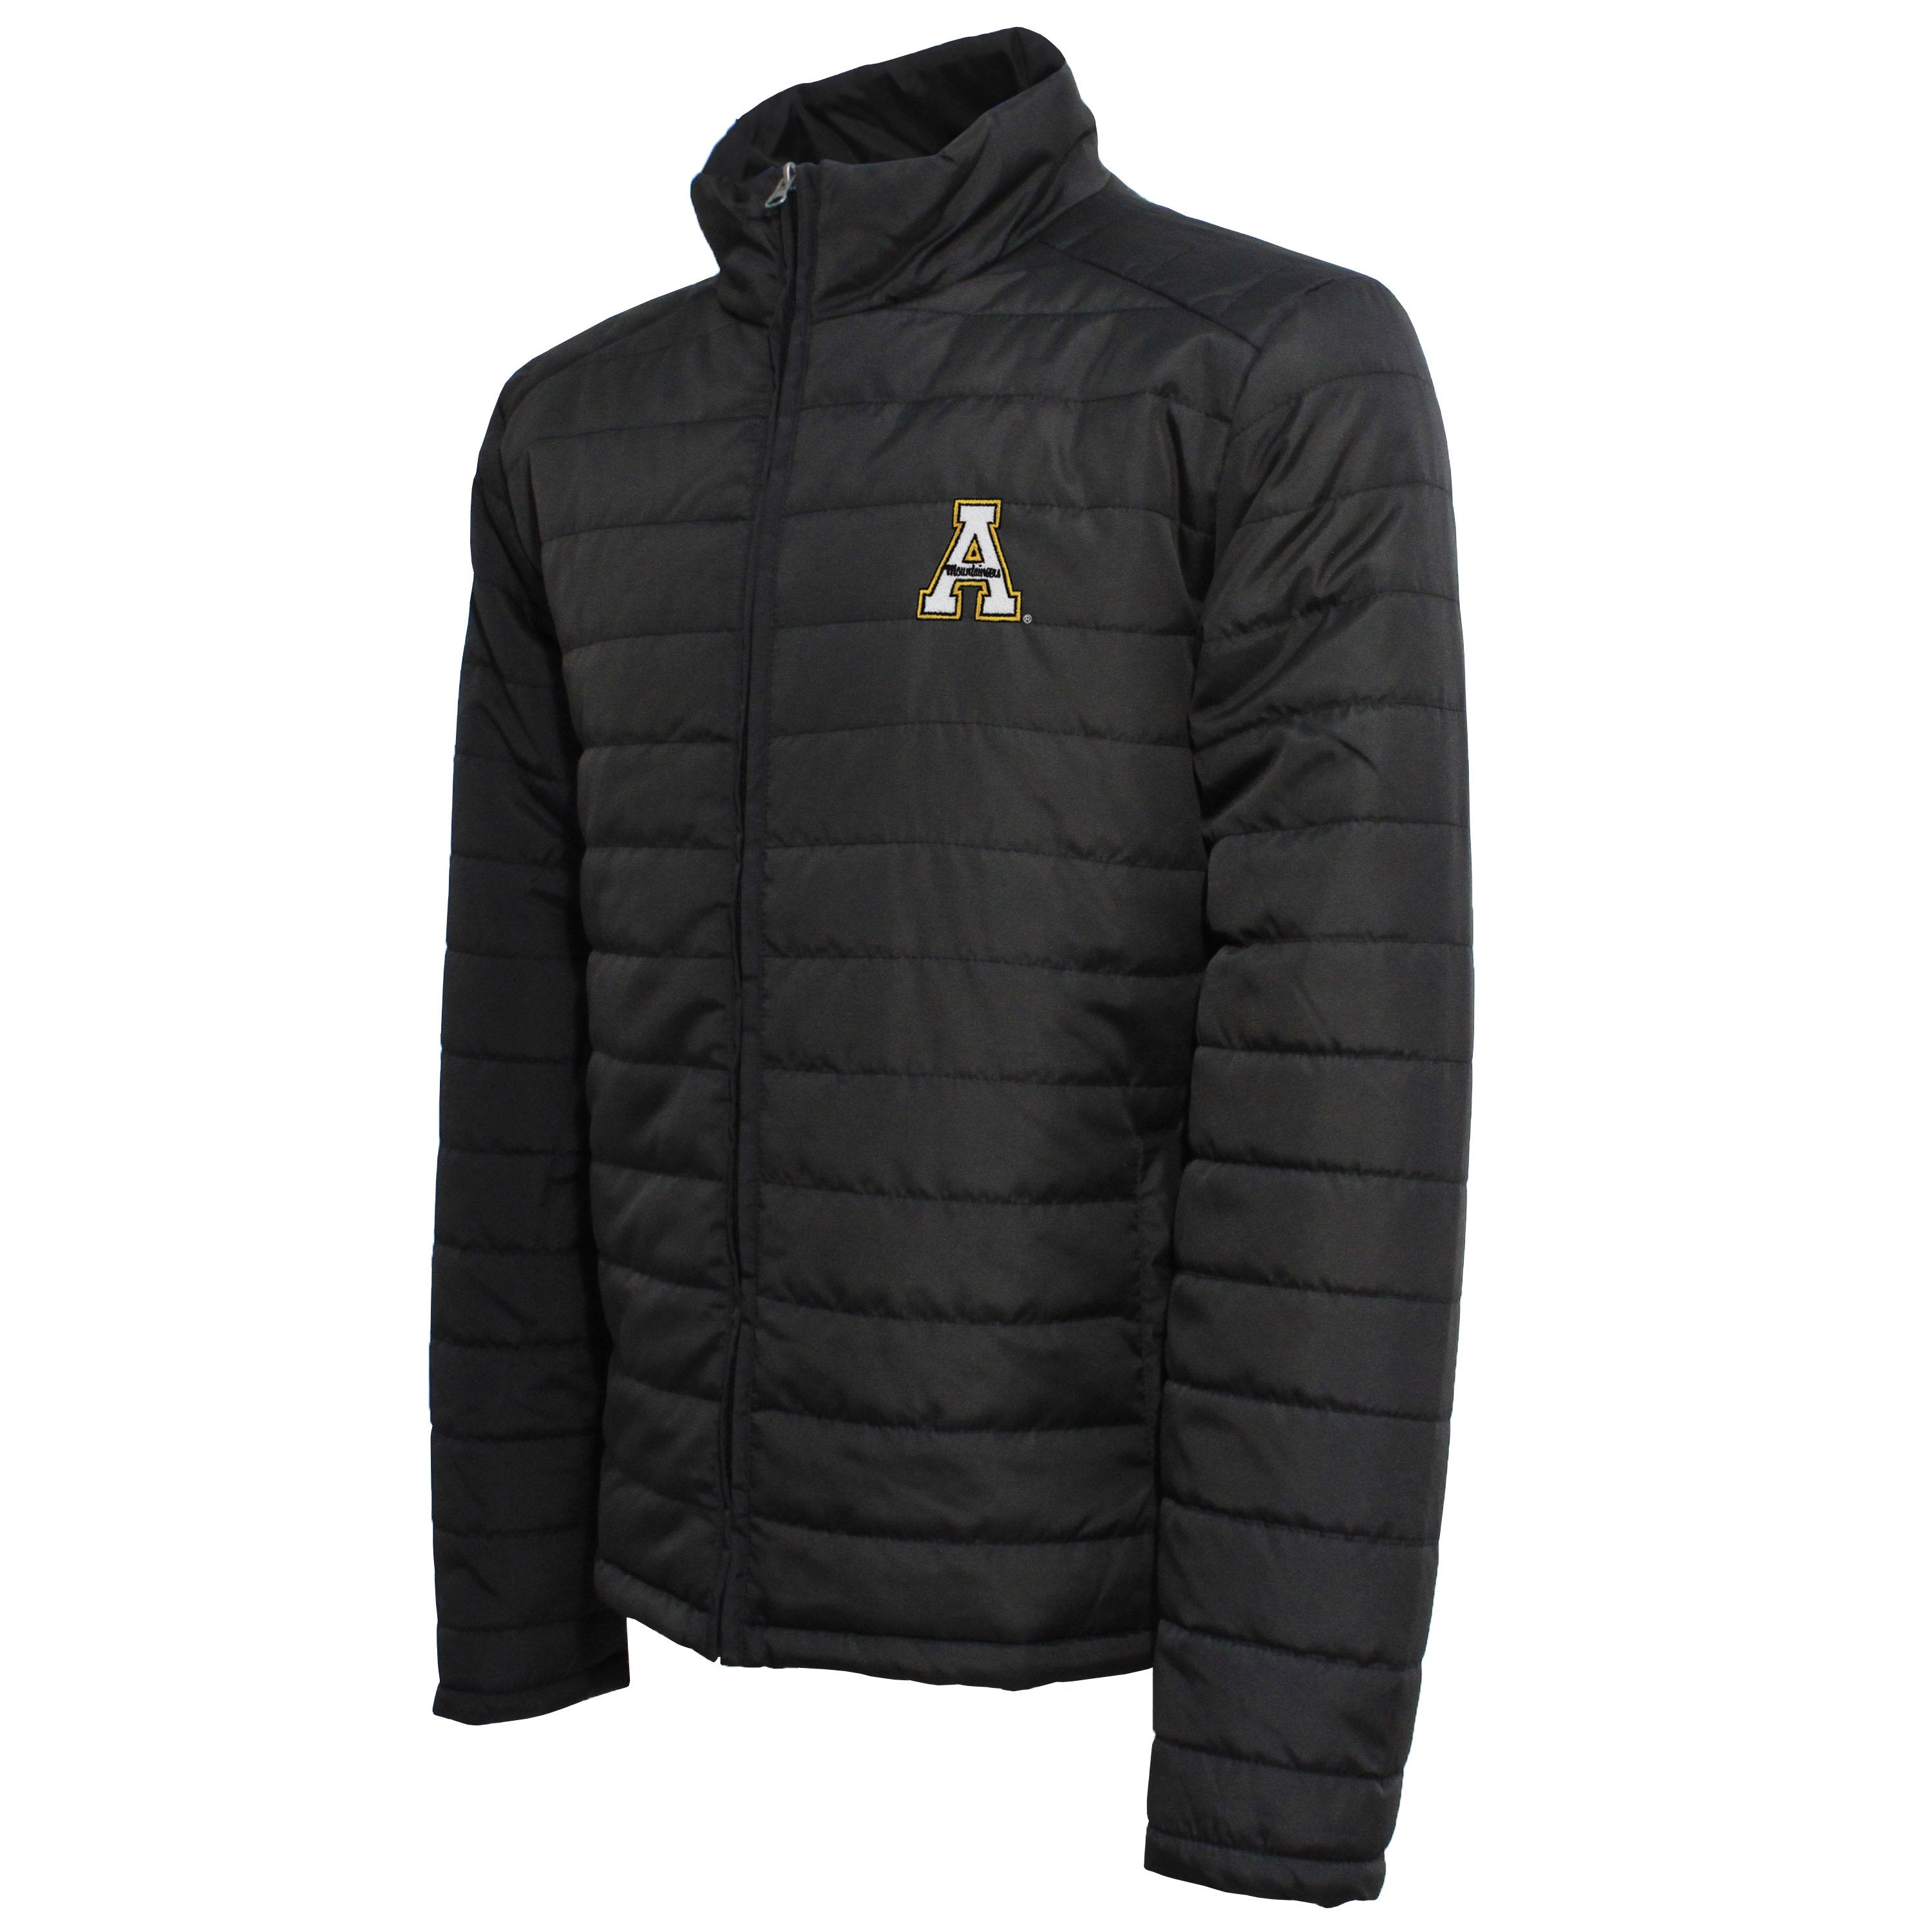 Crable Appalachian State Men's Black Puffer Jacket